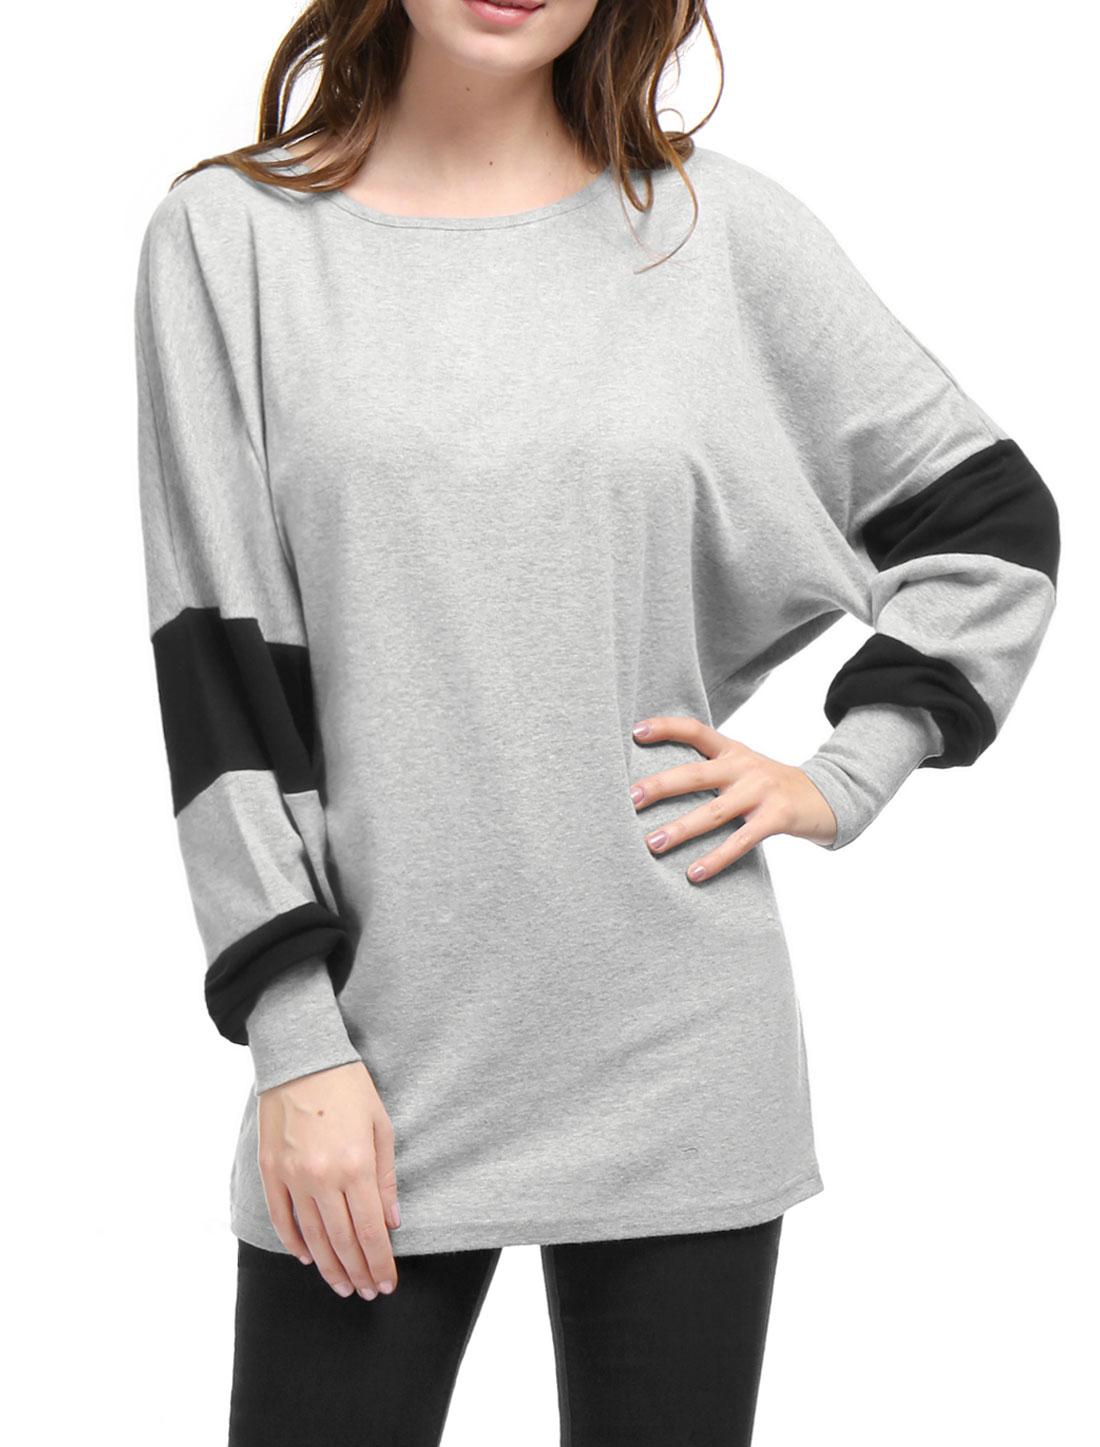 Women Color Block Batwing Sleeves Loose Tunic Top Light Gray XS